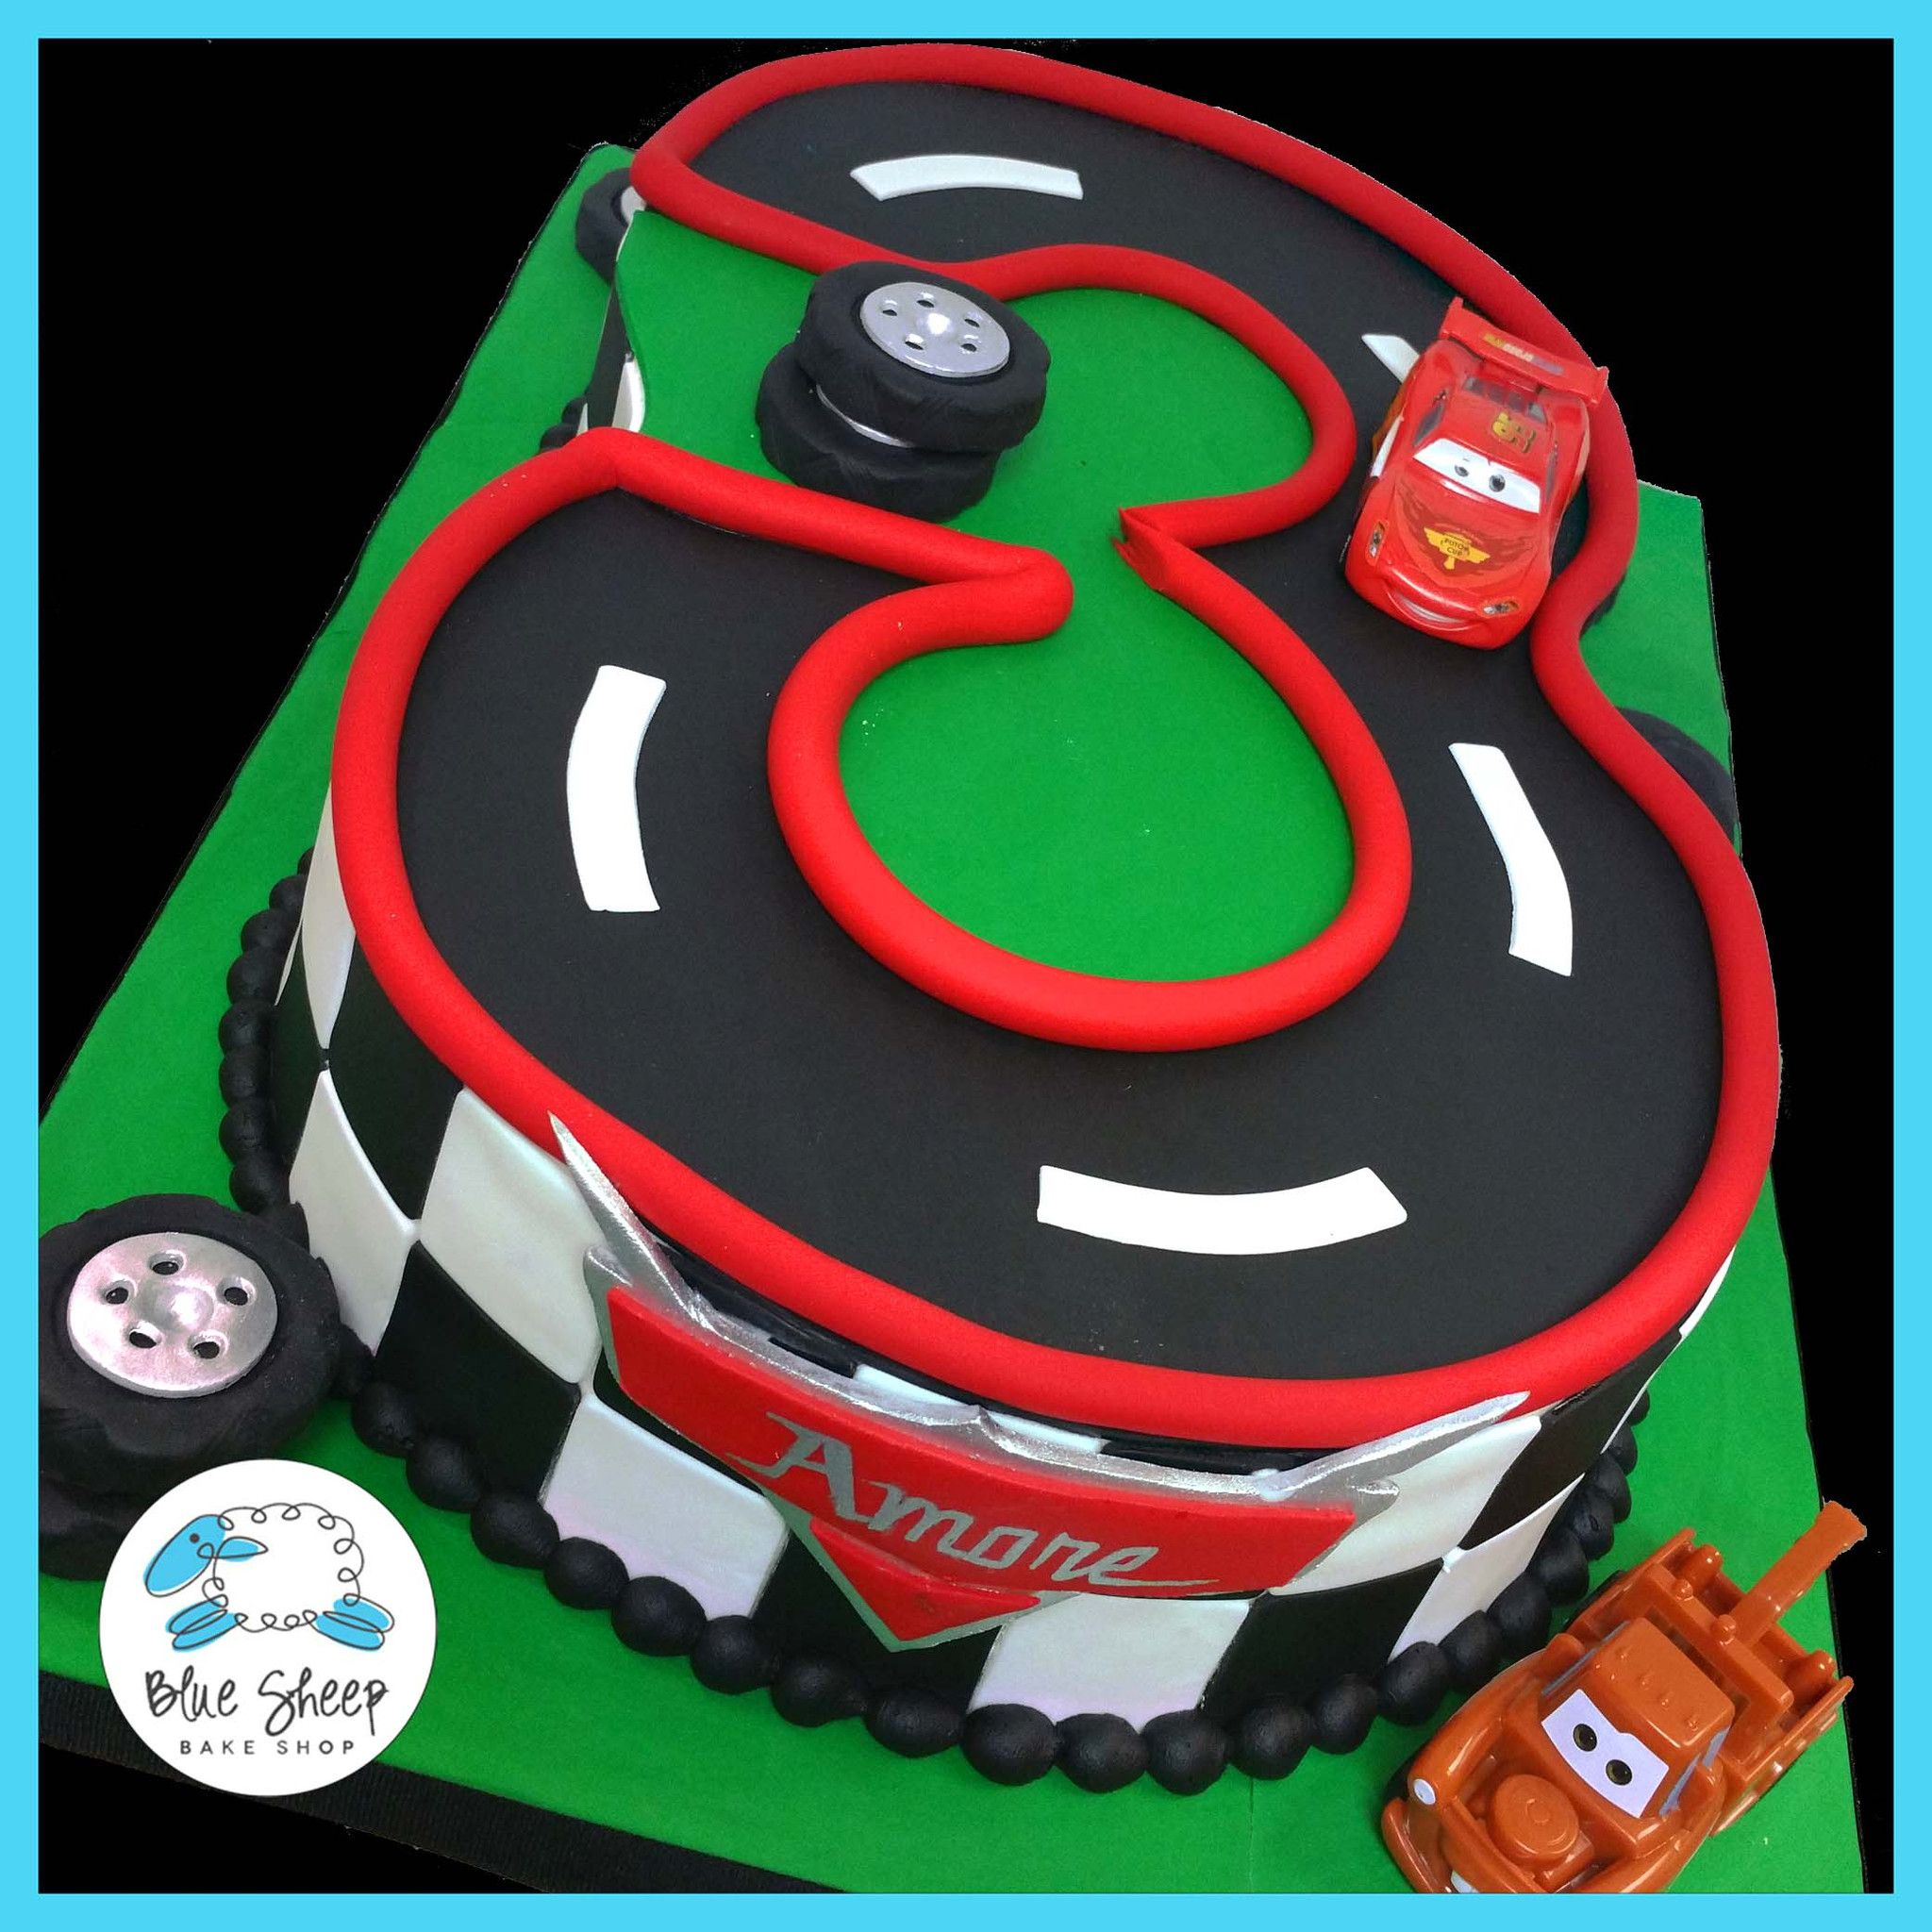 Magnificent 3 Carved Cars Themed Cake Lightning Mcqueen Birthday Cake Cars Funny Birthday Cards Online Elaedamsfinfo